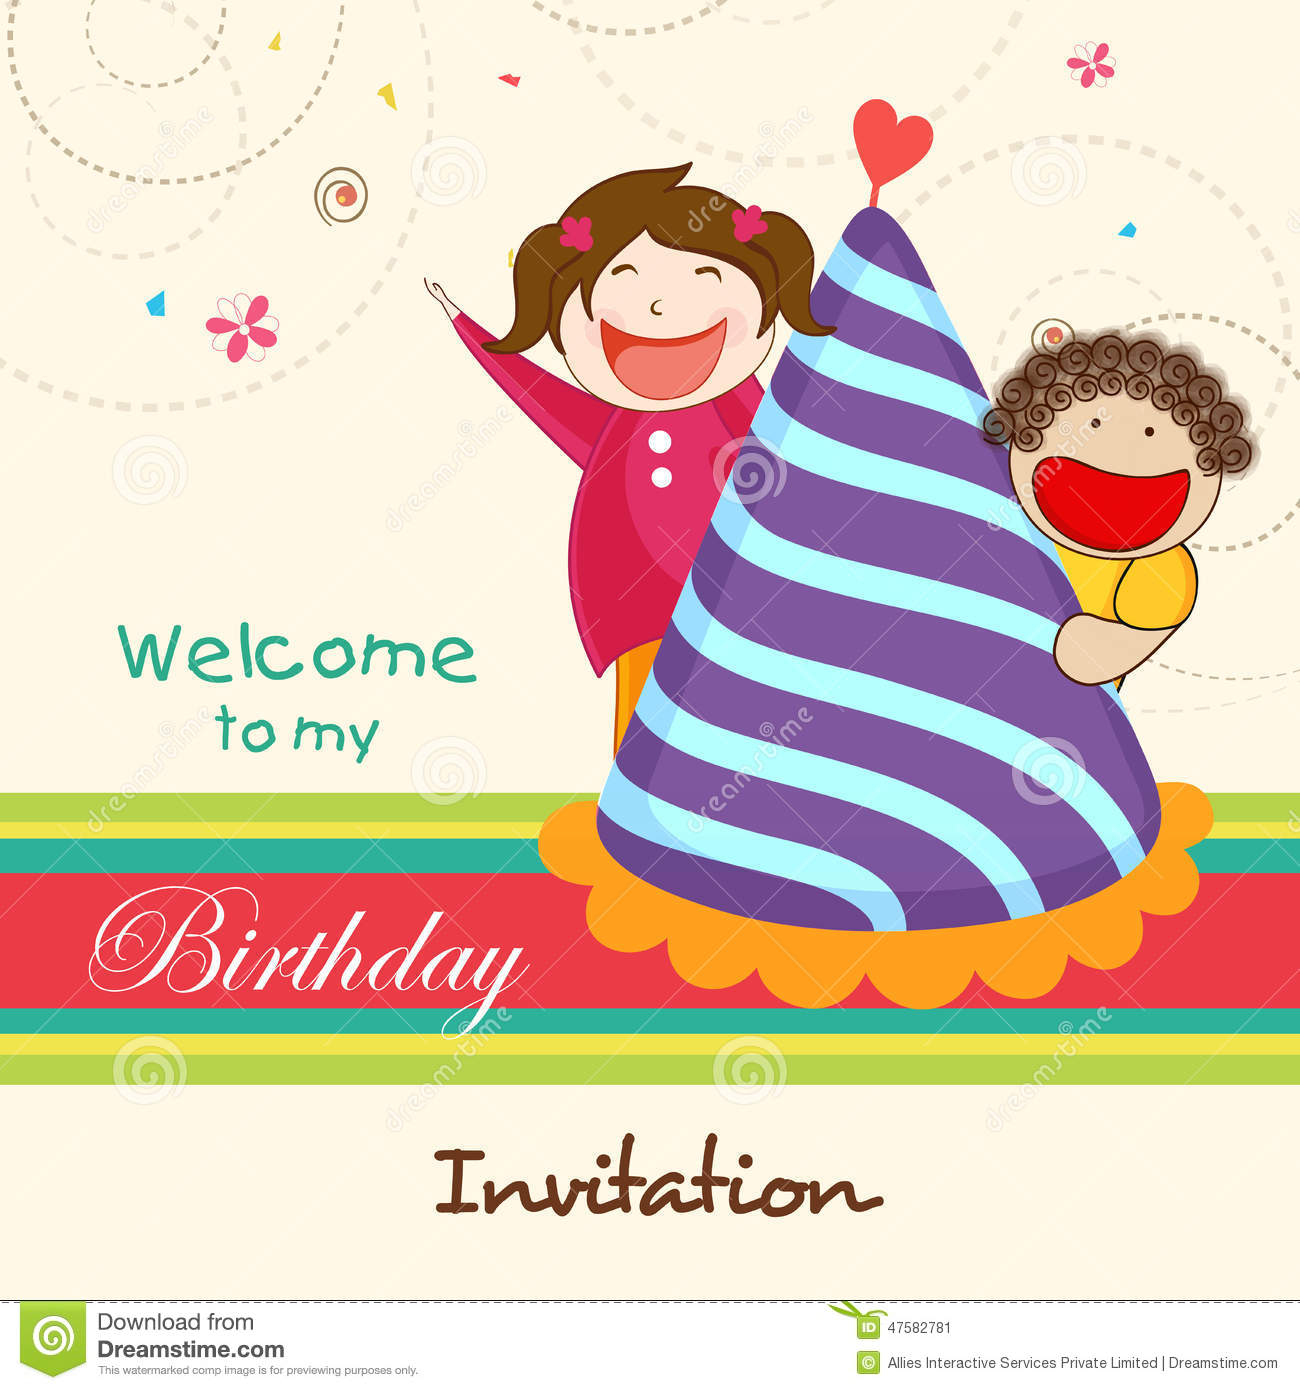 Kids invitation cards idealstalist kids invitation cards filmwisefo